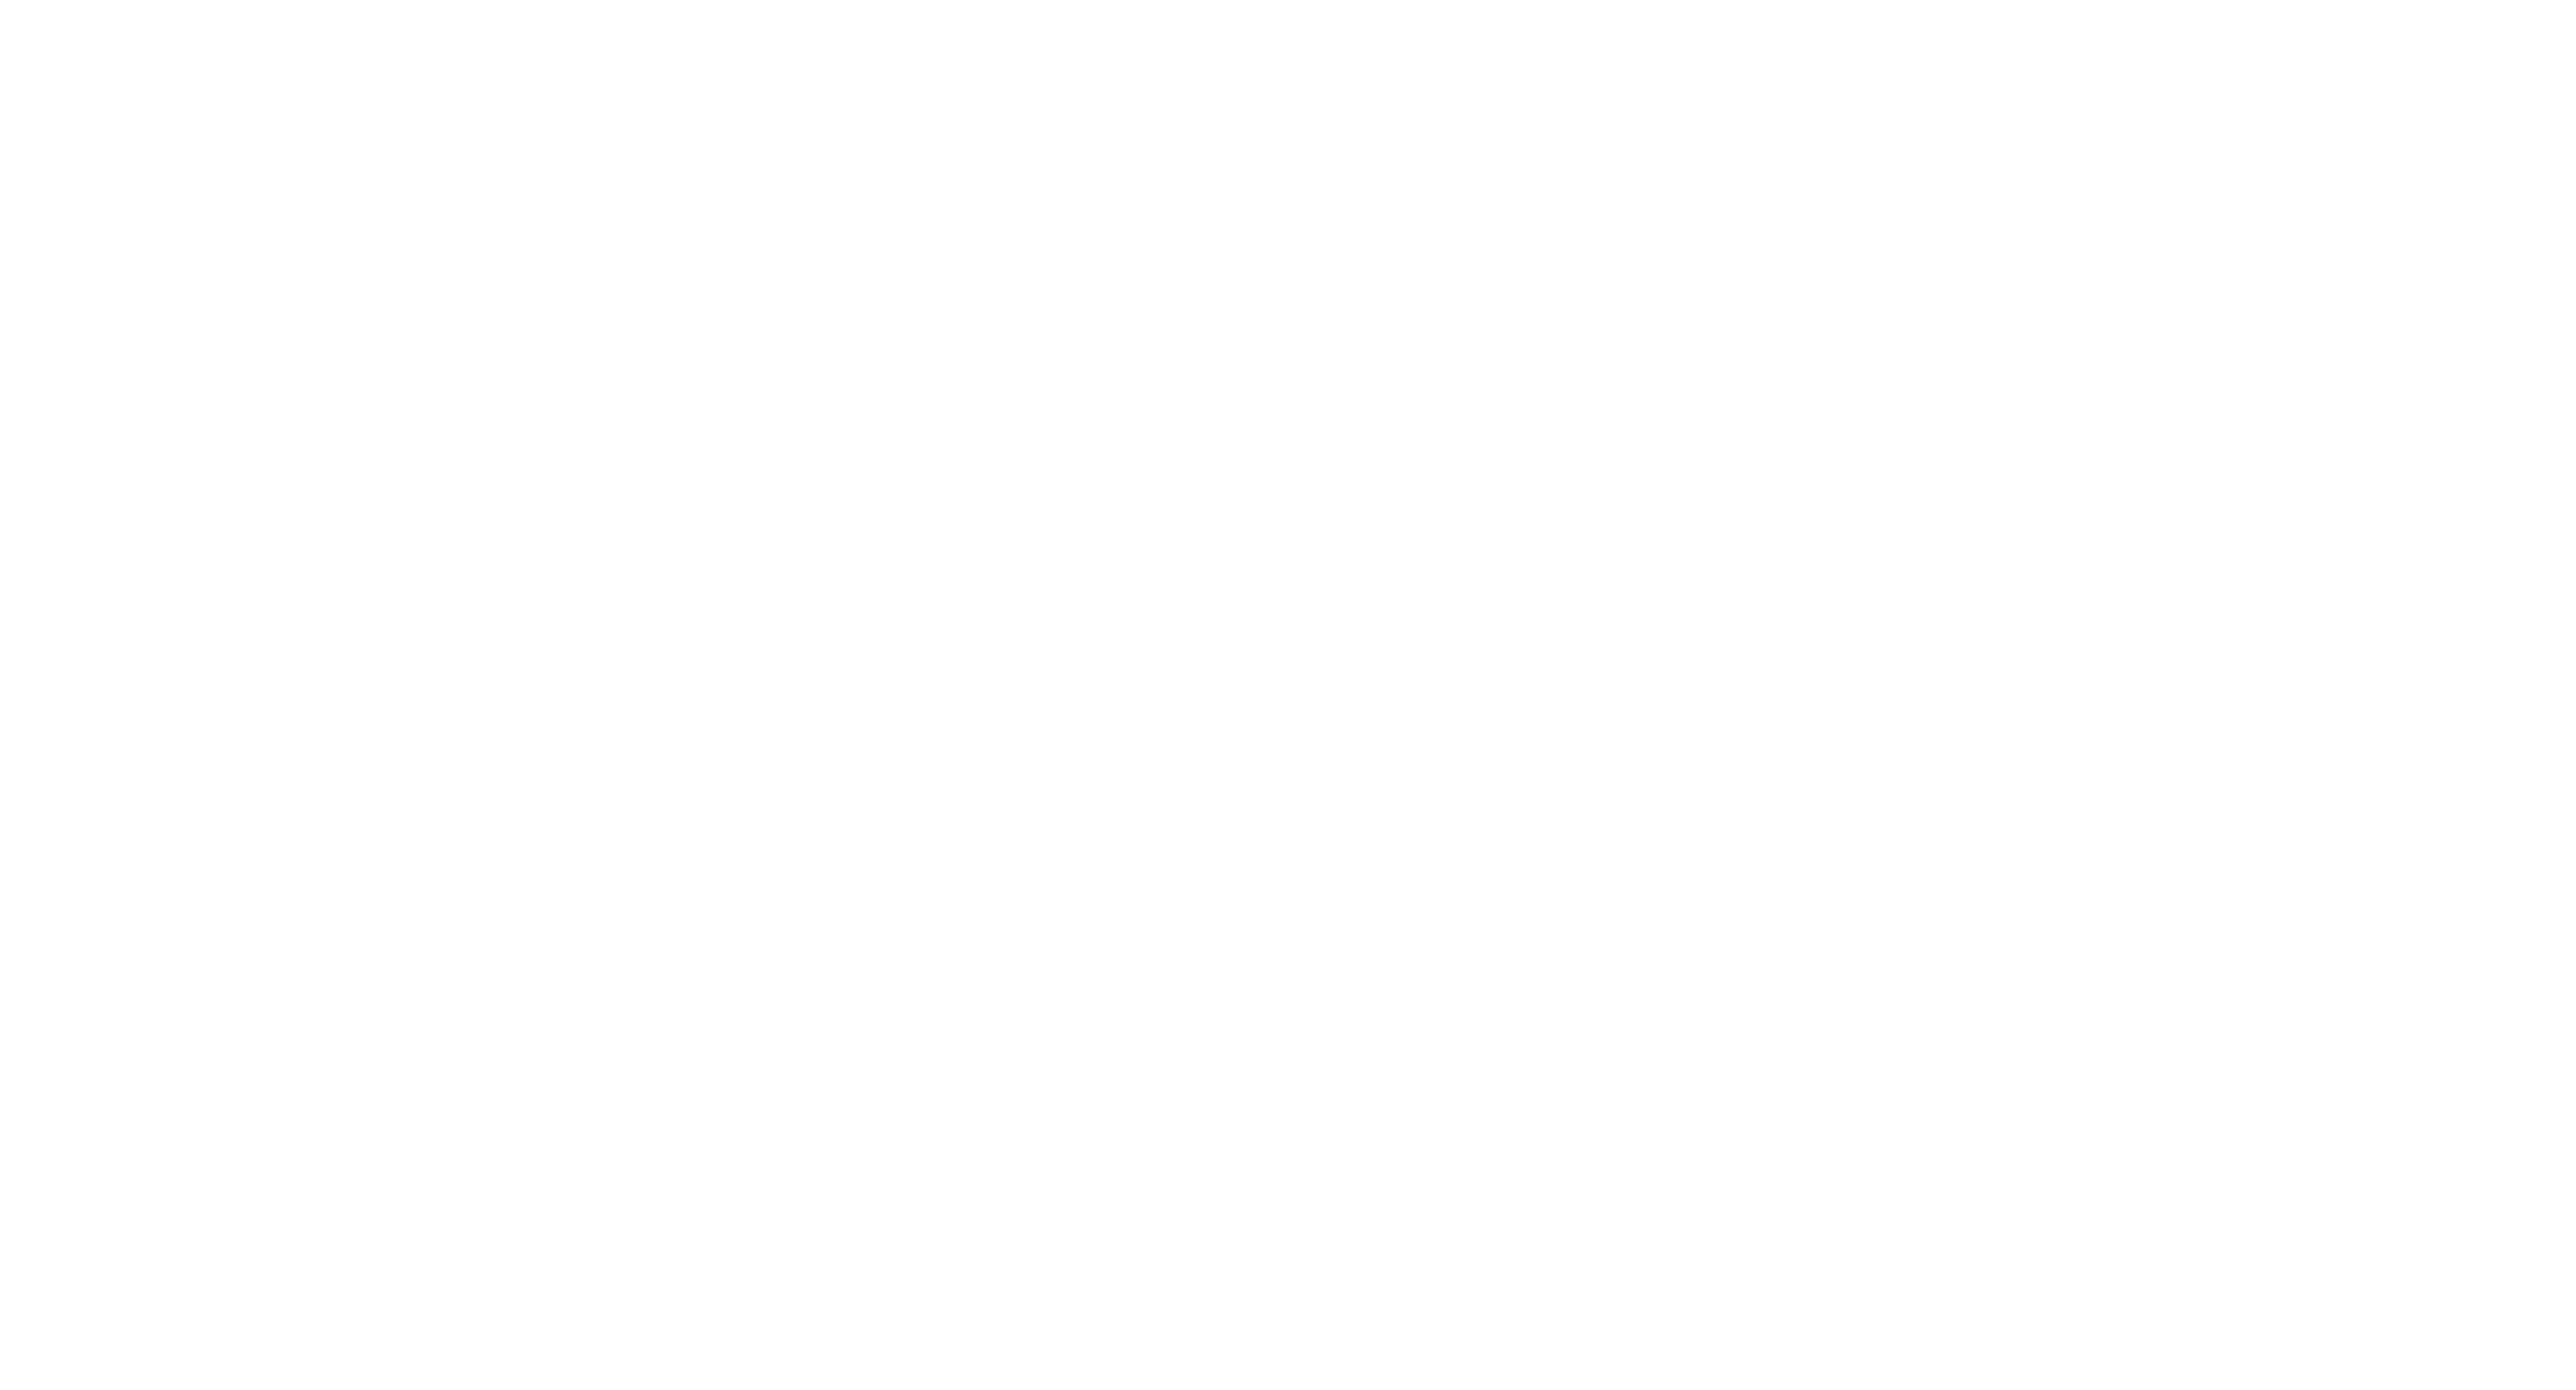 Adur and Worthing Liberal Democrats